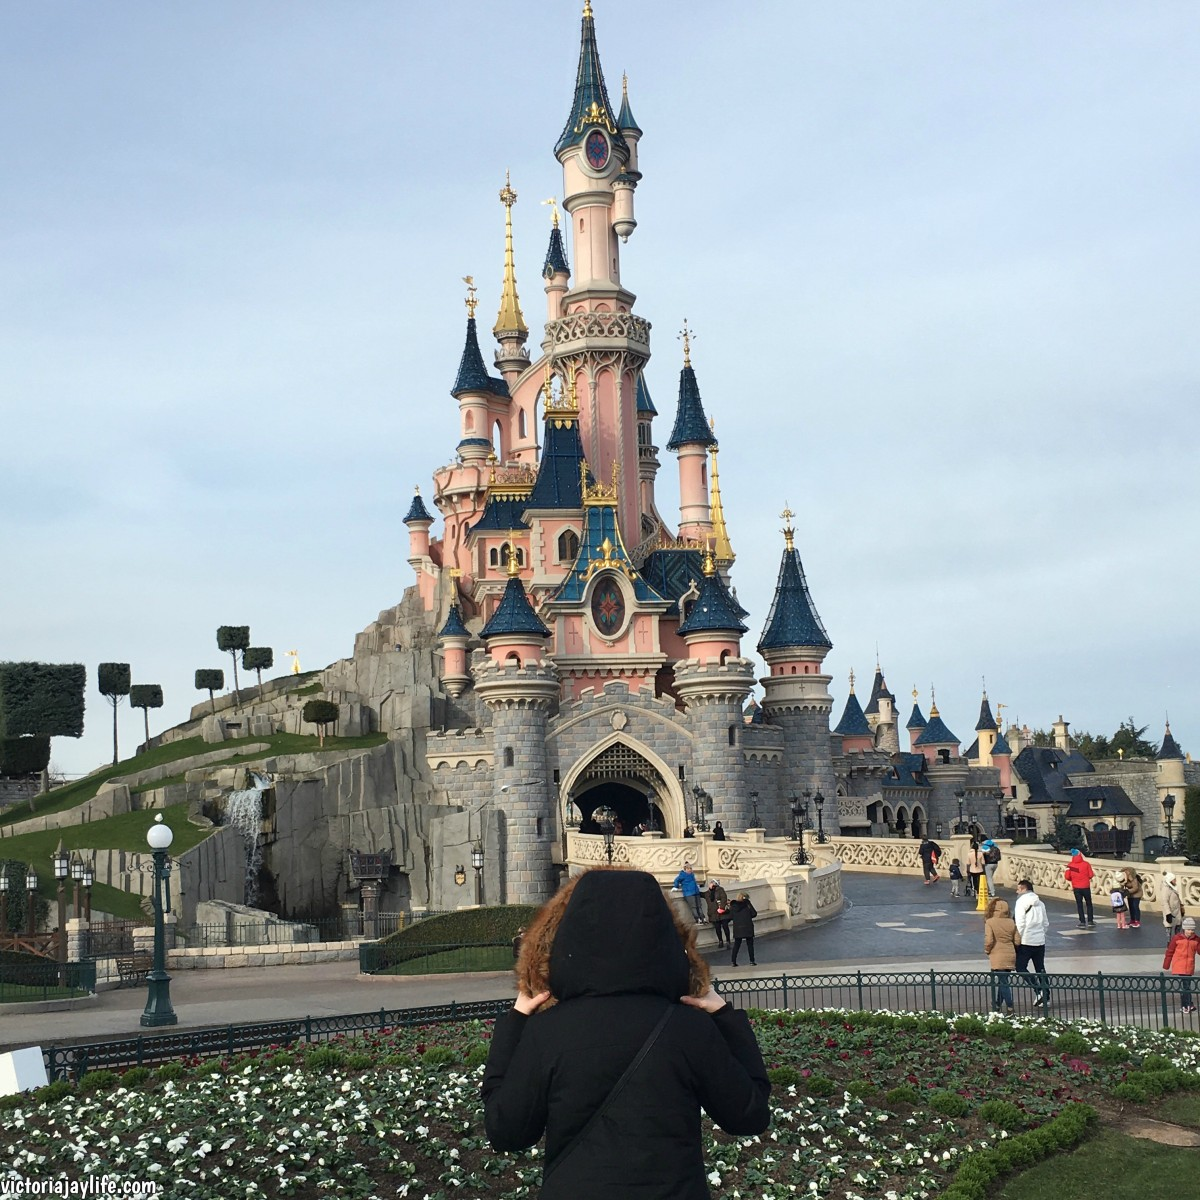 The 5 Best Disneyland Paris Attractions for Adults (in my opinion!)